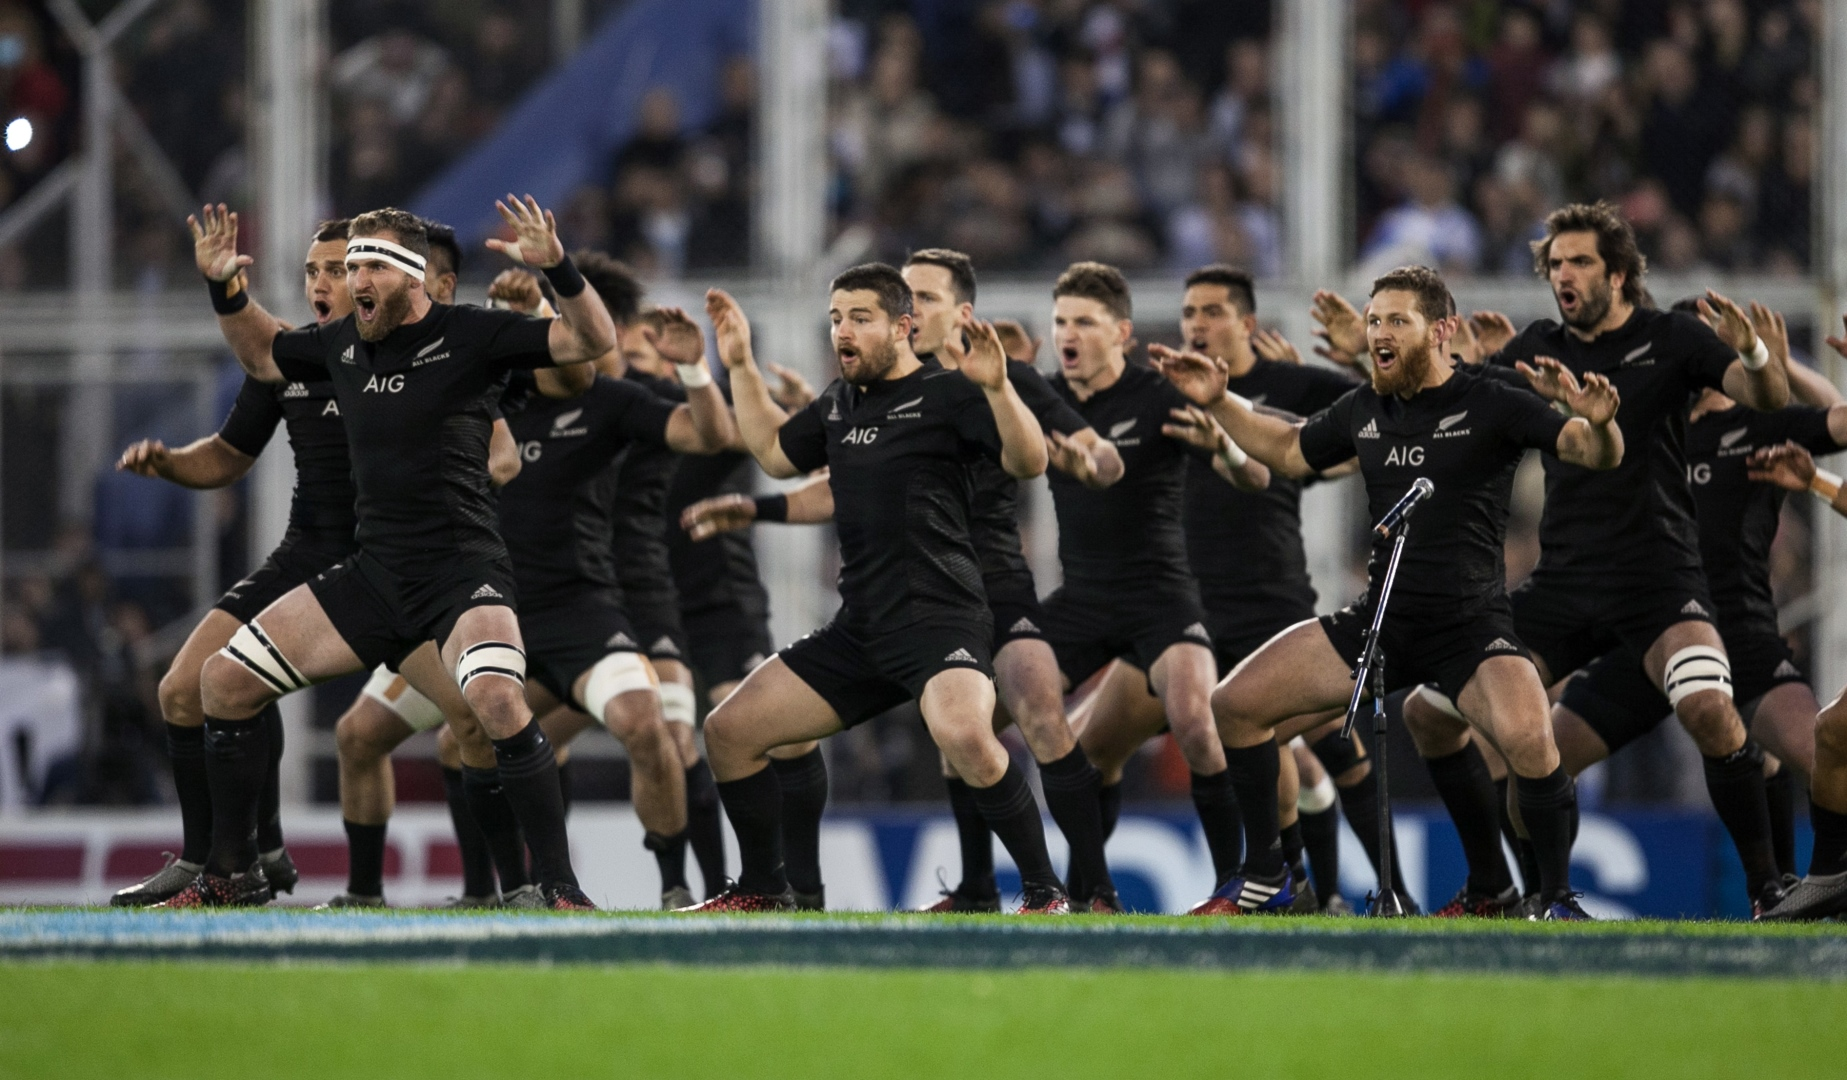 LionsWatch: Focus on the All Blacks